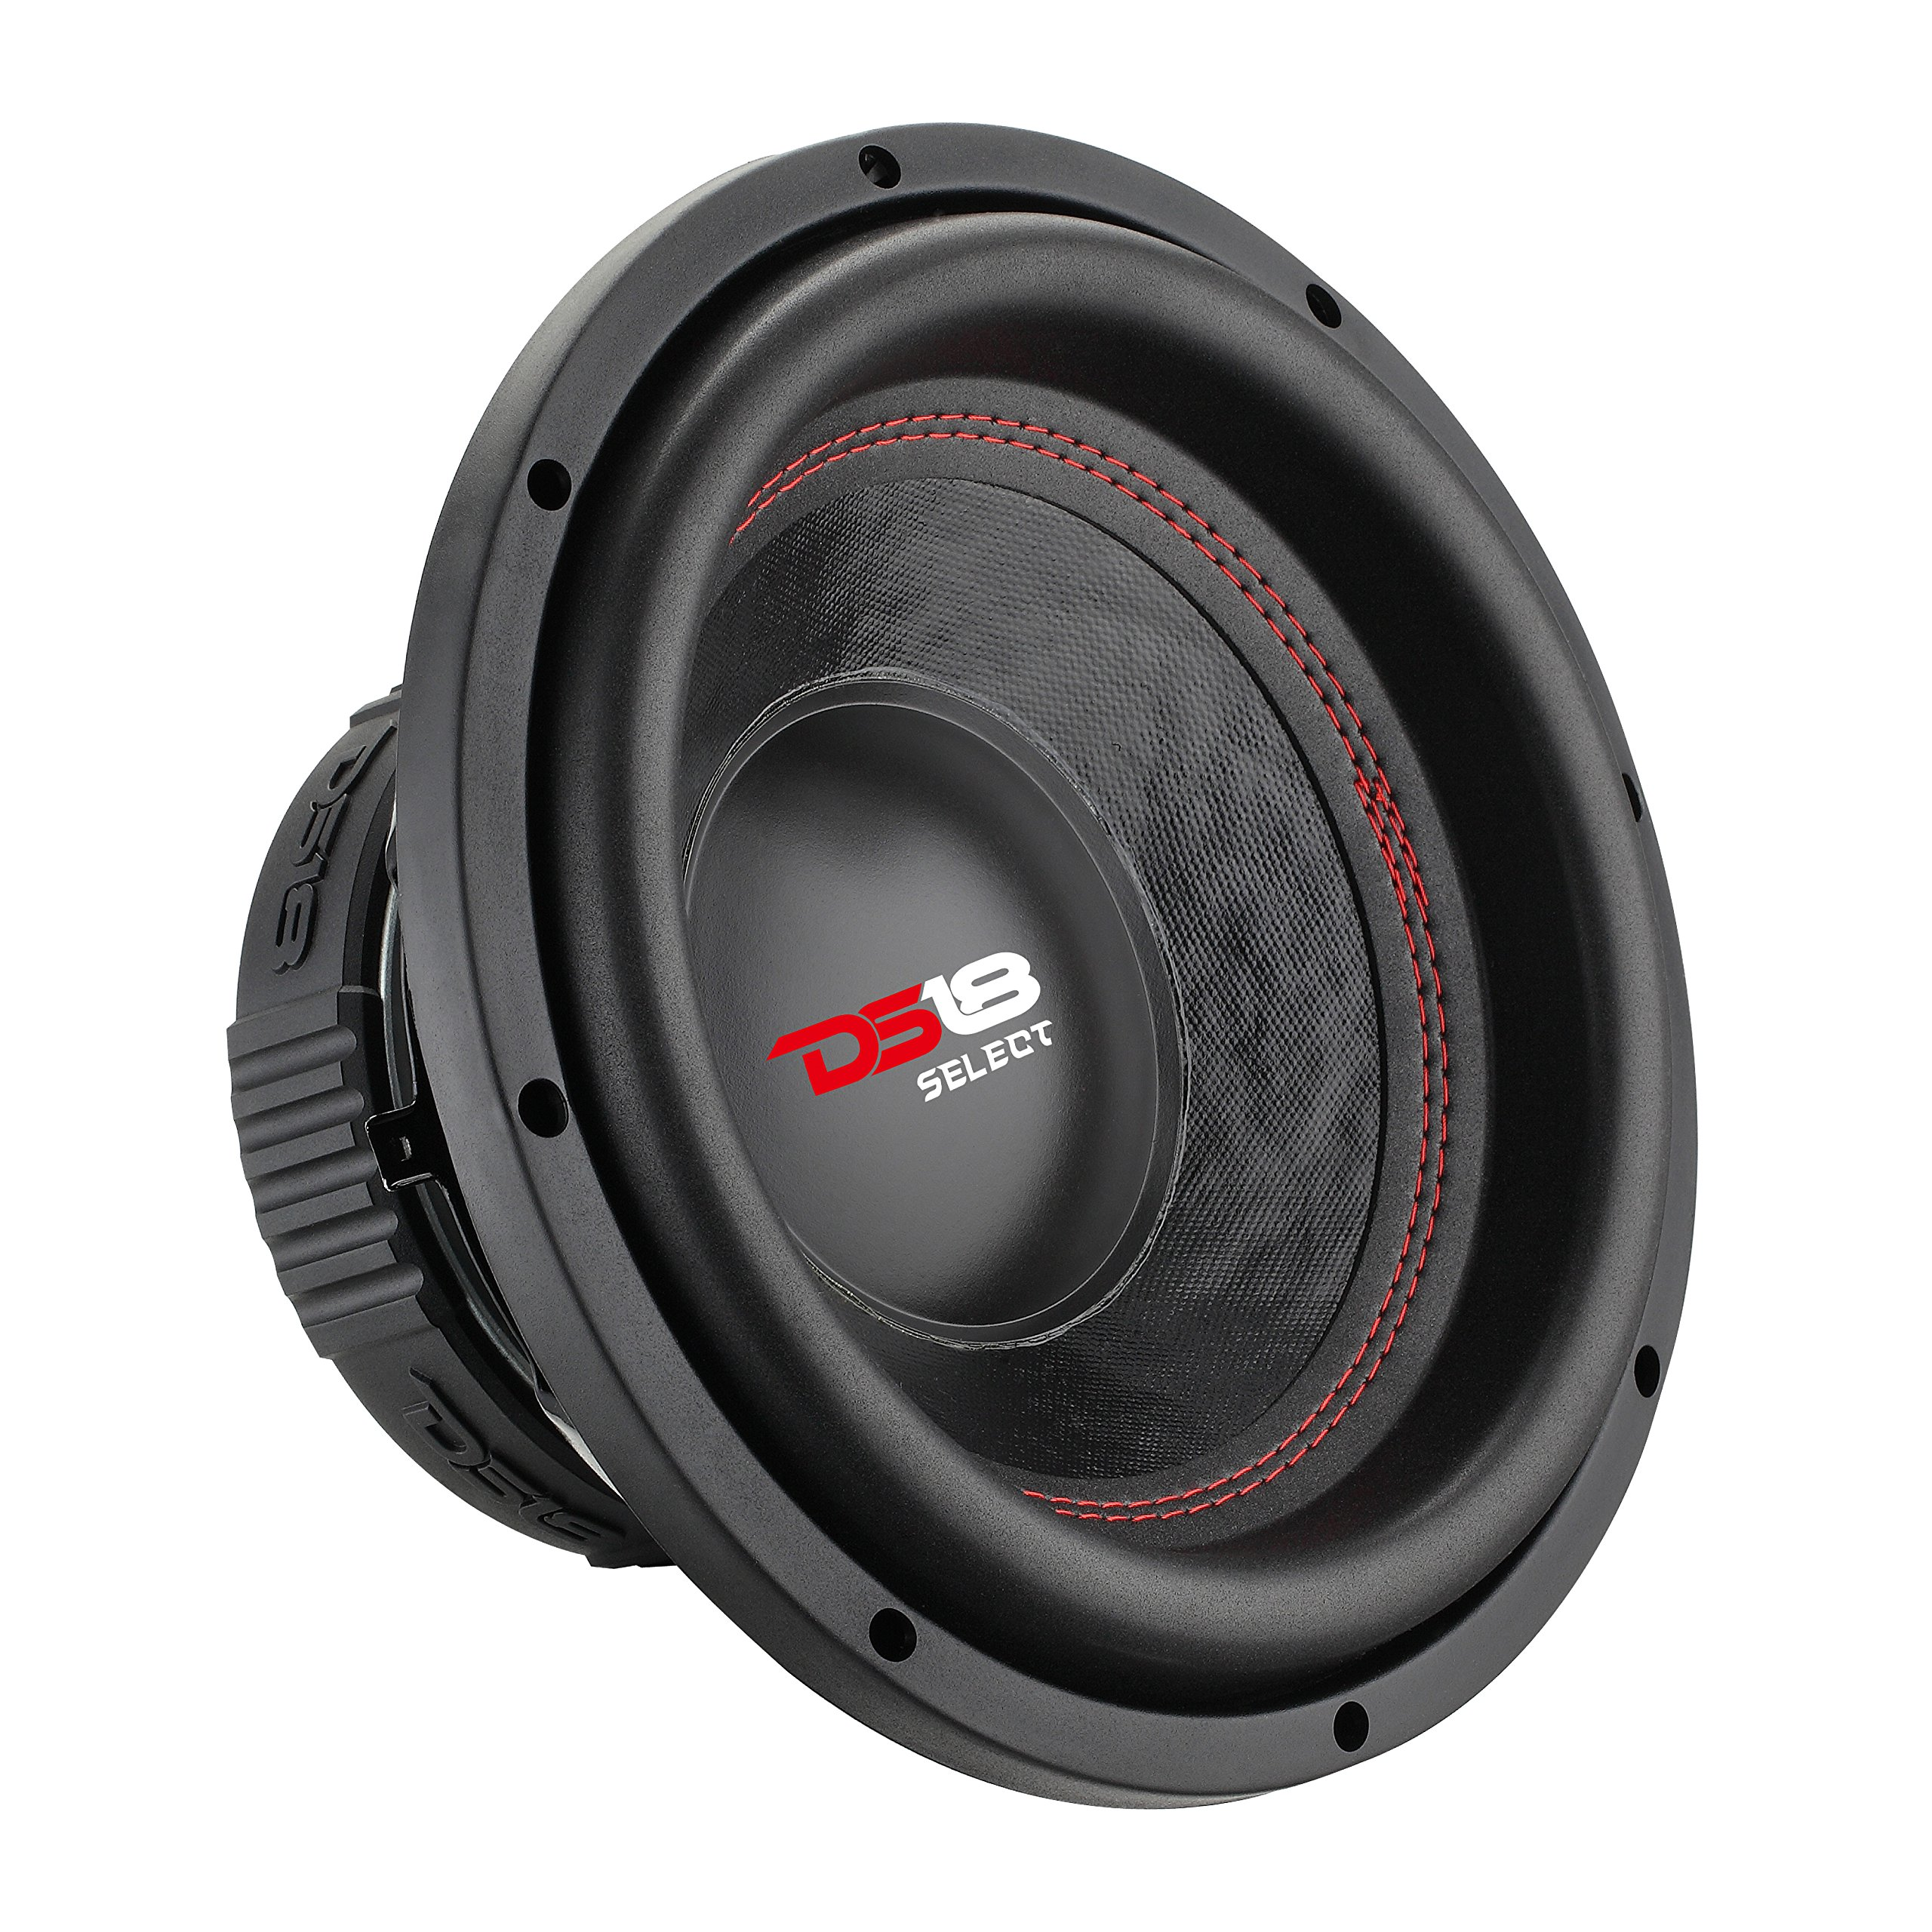 DS18 SLC8S Car Subwoofer Audio Speaker - 8'' in. Paper Glass Fiber Cone, Black Steel Basket, Single Voice Coil 4 Ohm Impedance, 400W MAX Power and Foam Surround for Vehicle Stereo Sound System